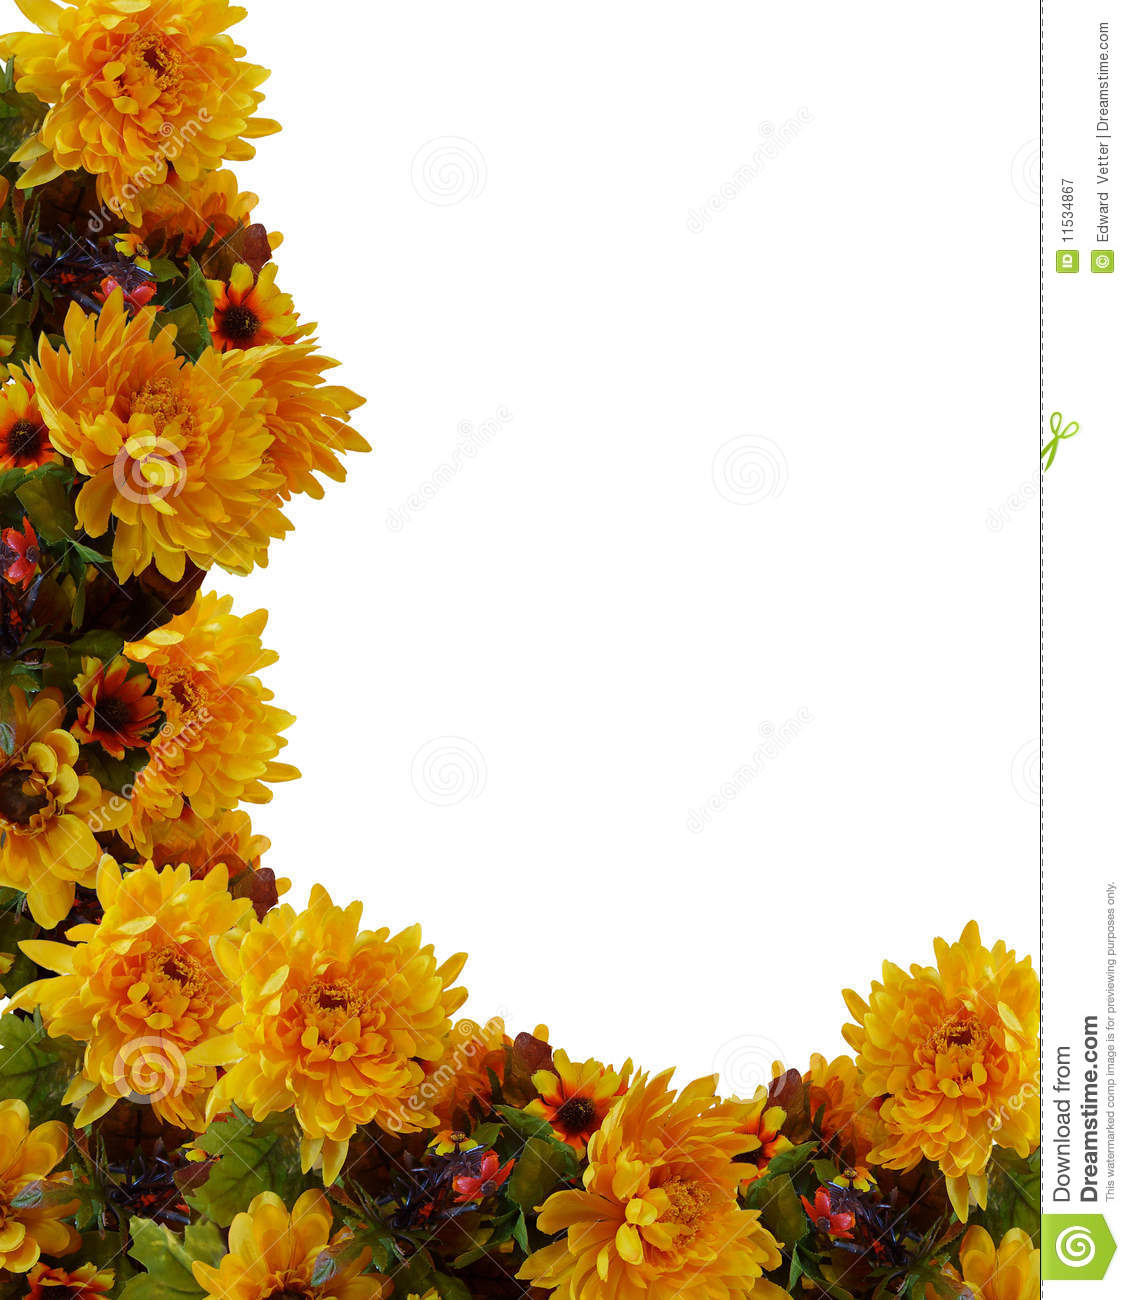 Autumn Fall Border Flowers Royalty Free Stock Photography